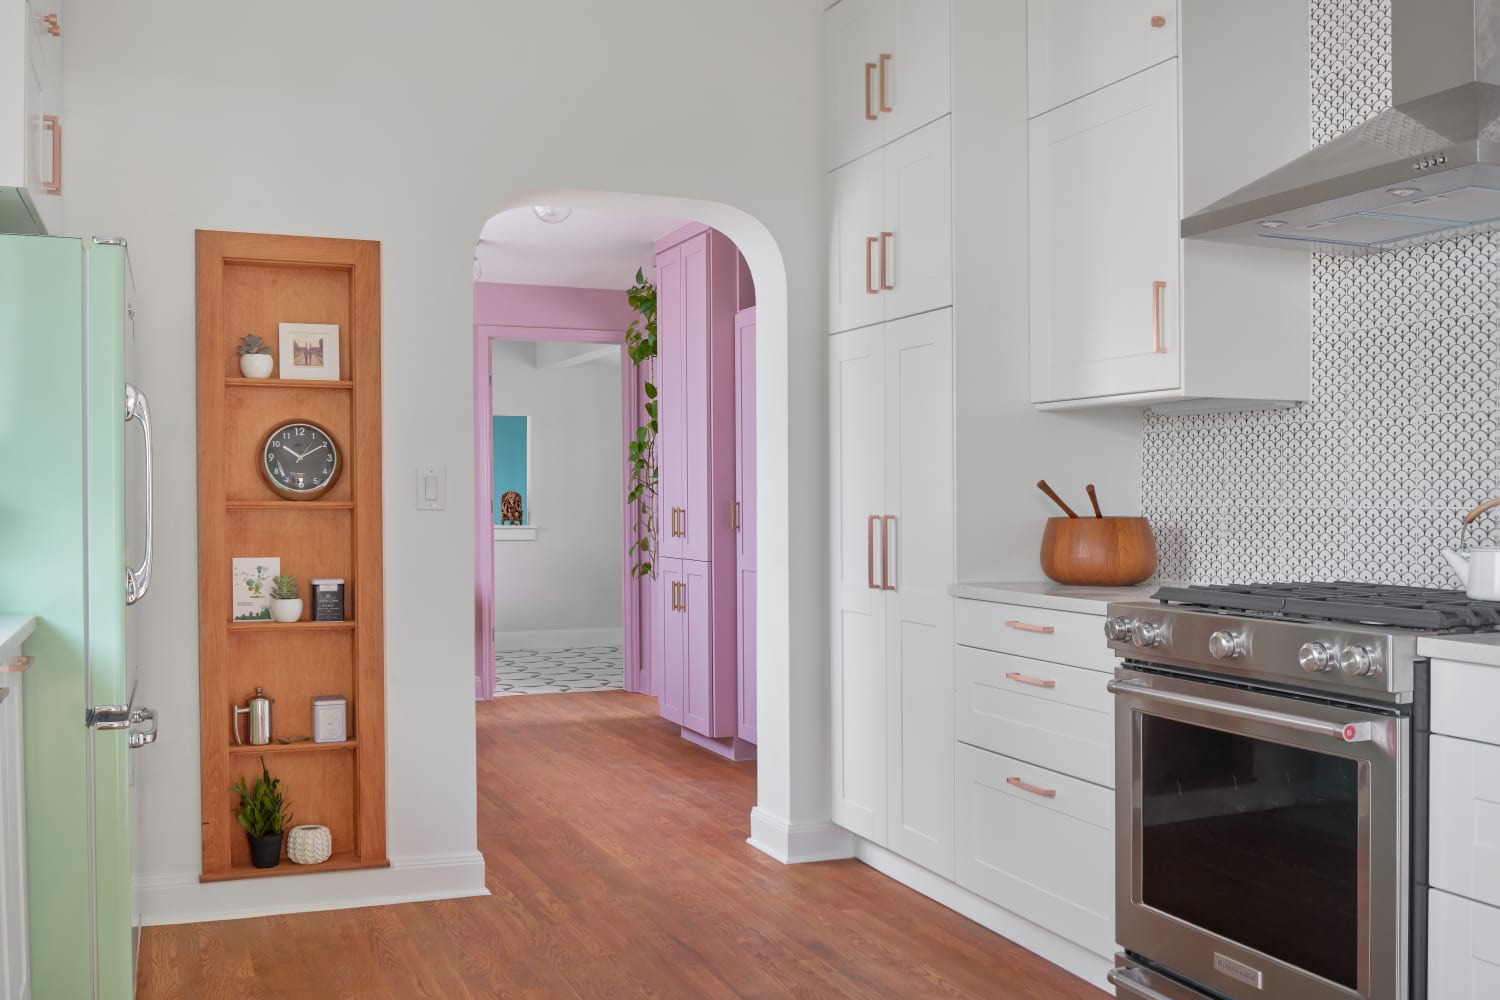 This Austin Remodel Is a Pastel Dream